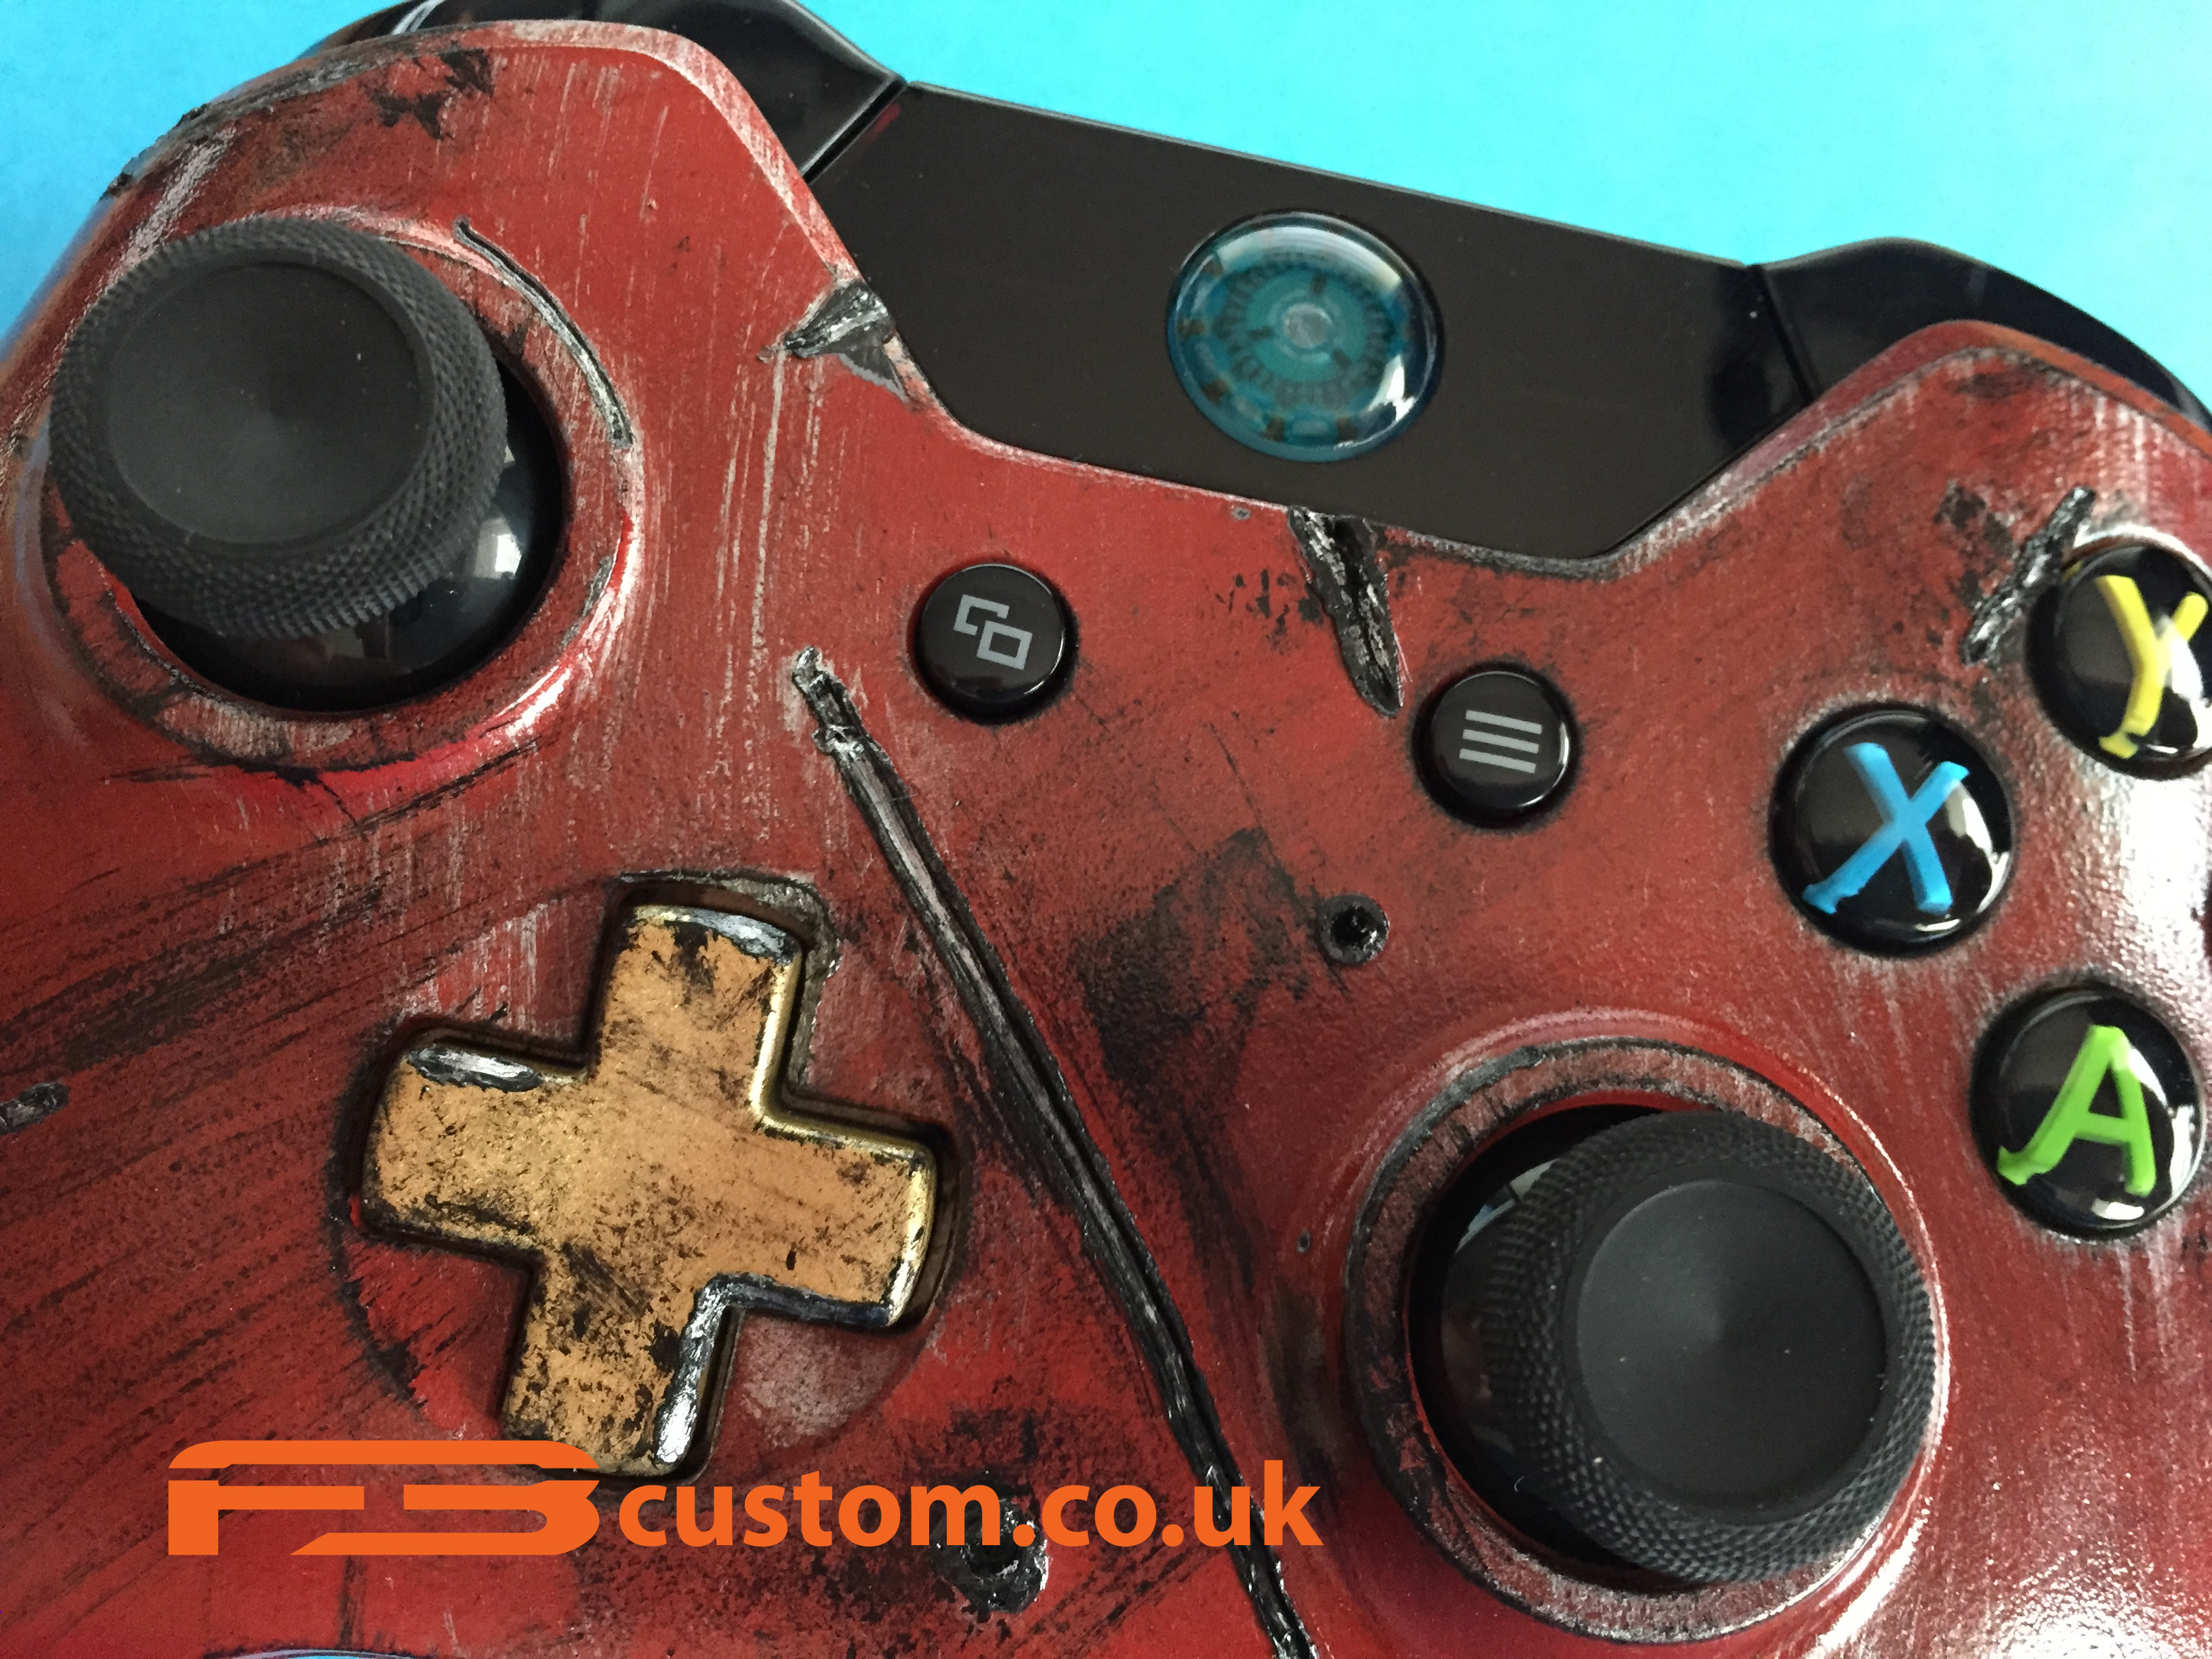 Custom XBOX one * iron man * Guide button ~ F3custom